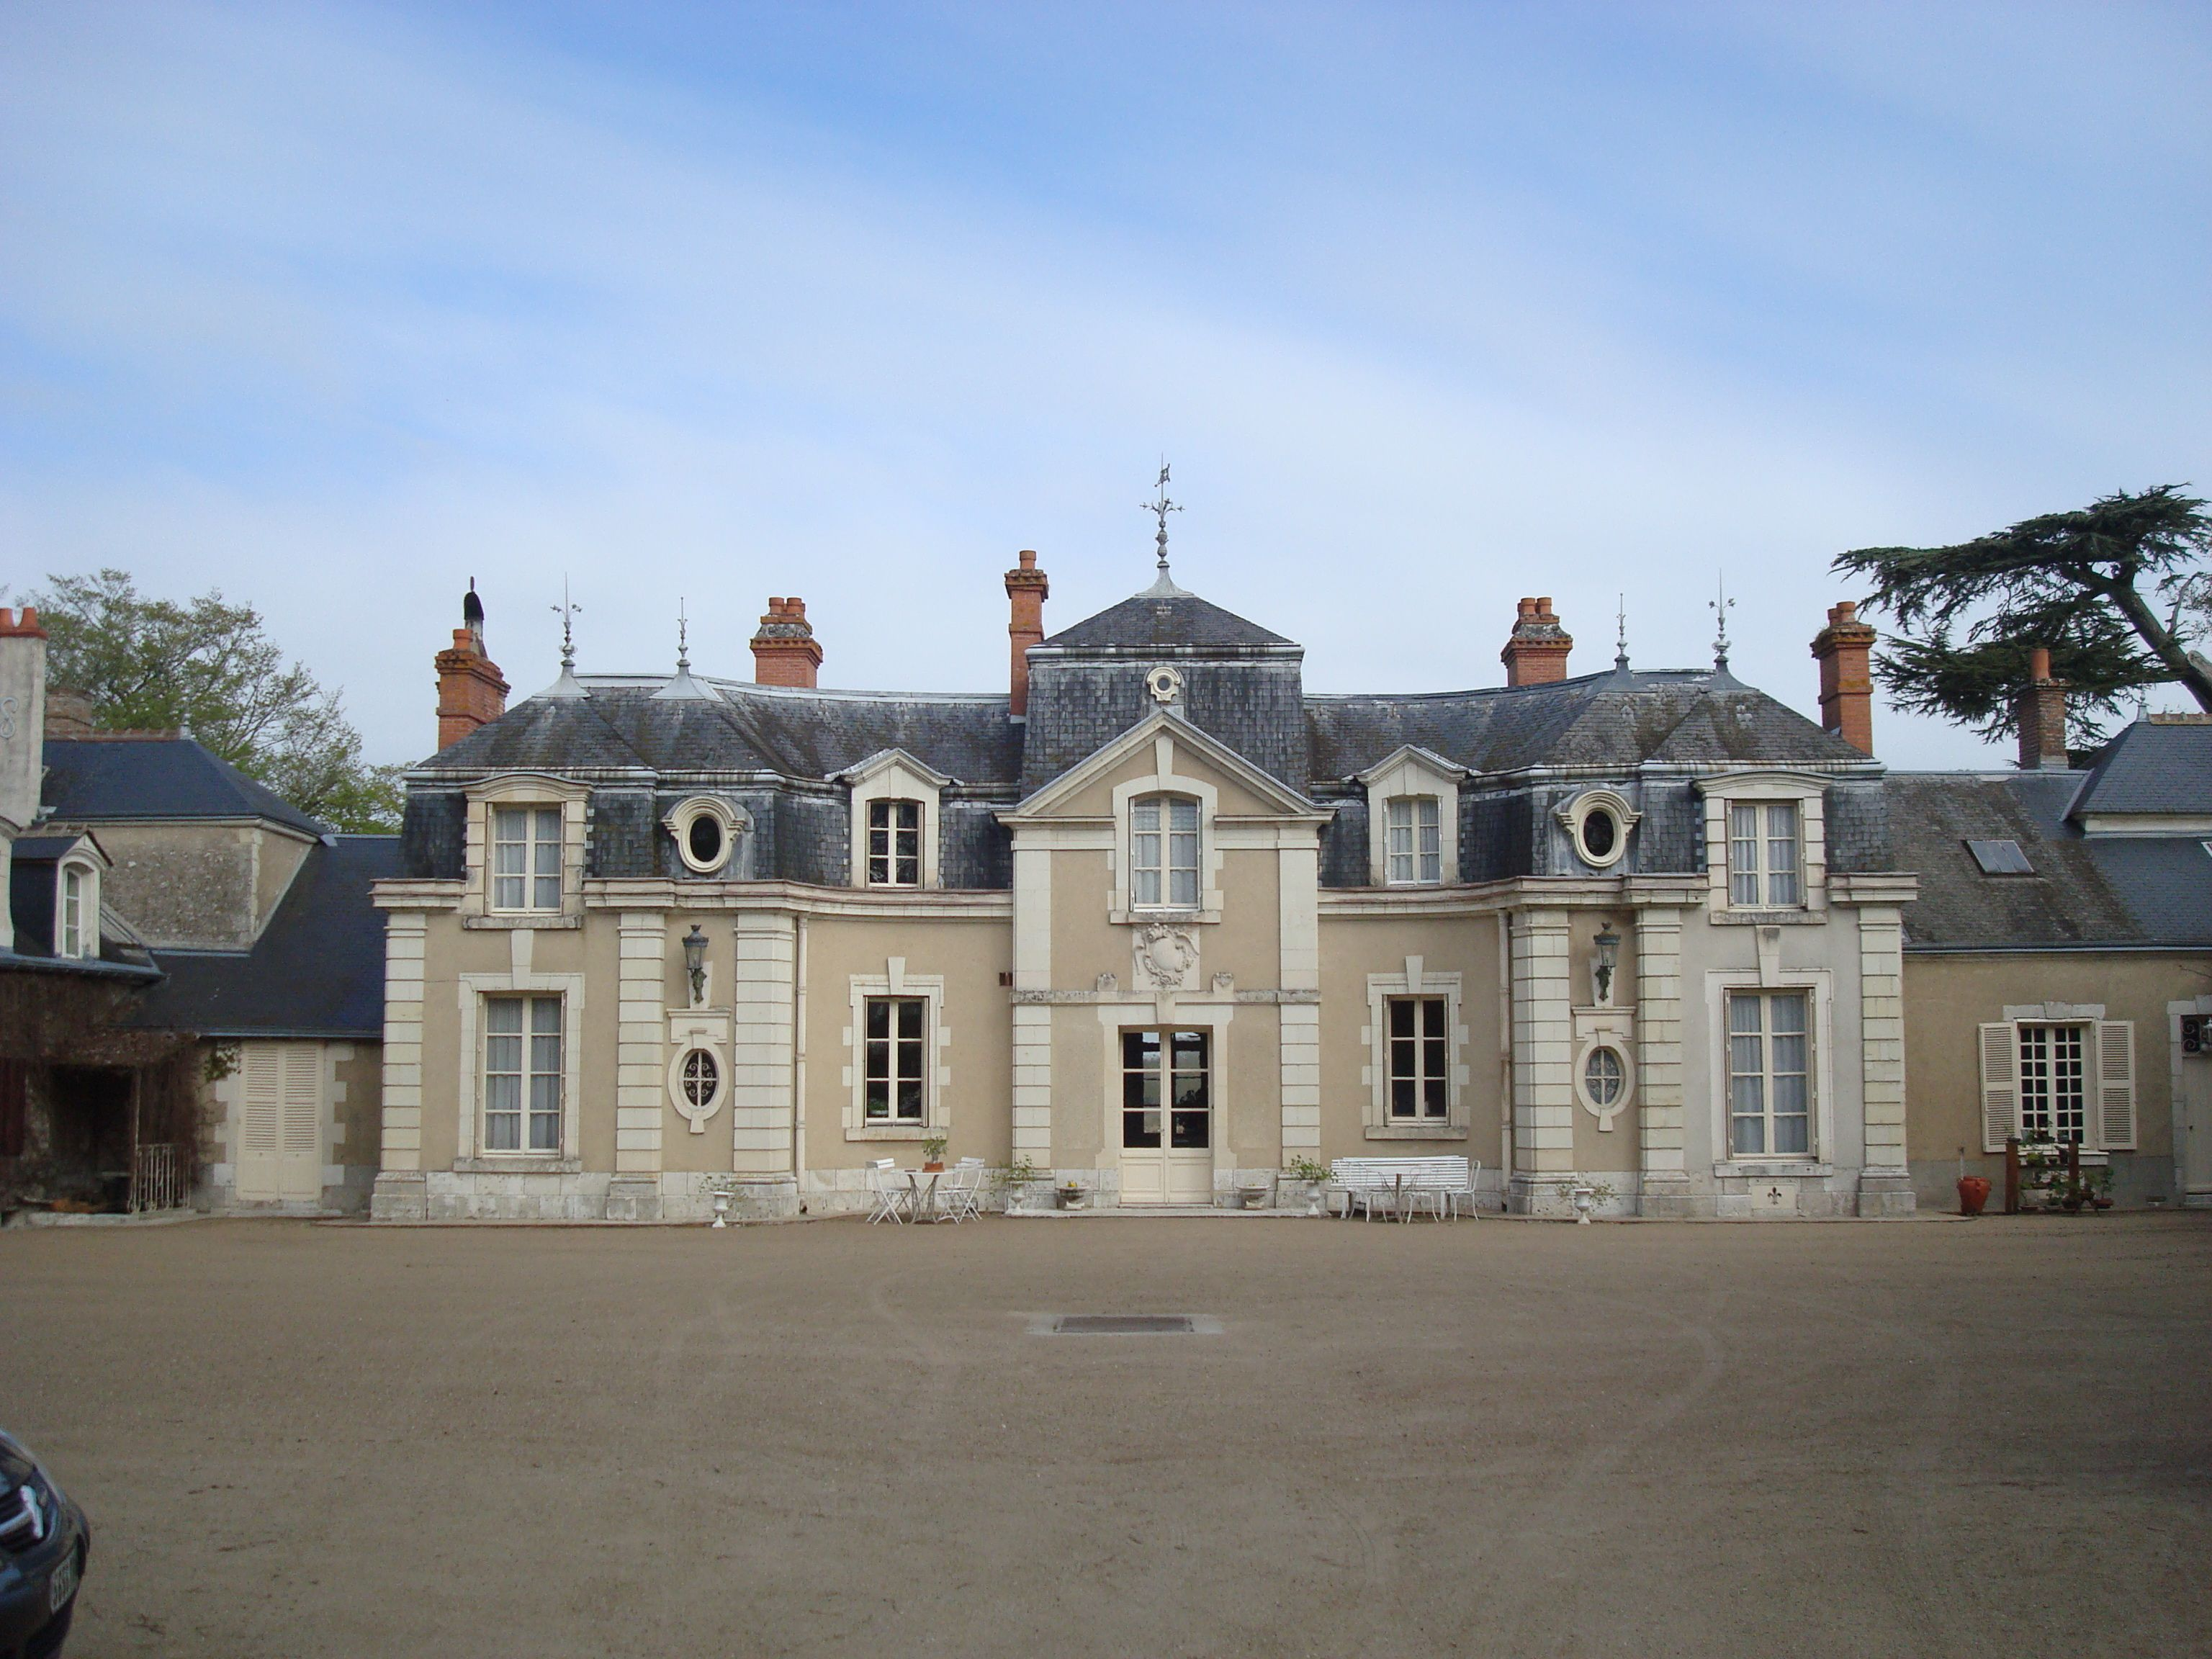 Staying At Chateau De Colliers In Muides Sur Loire France Very Delightful And All Things French French Castles French Chateau Posh Houses